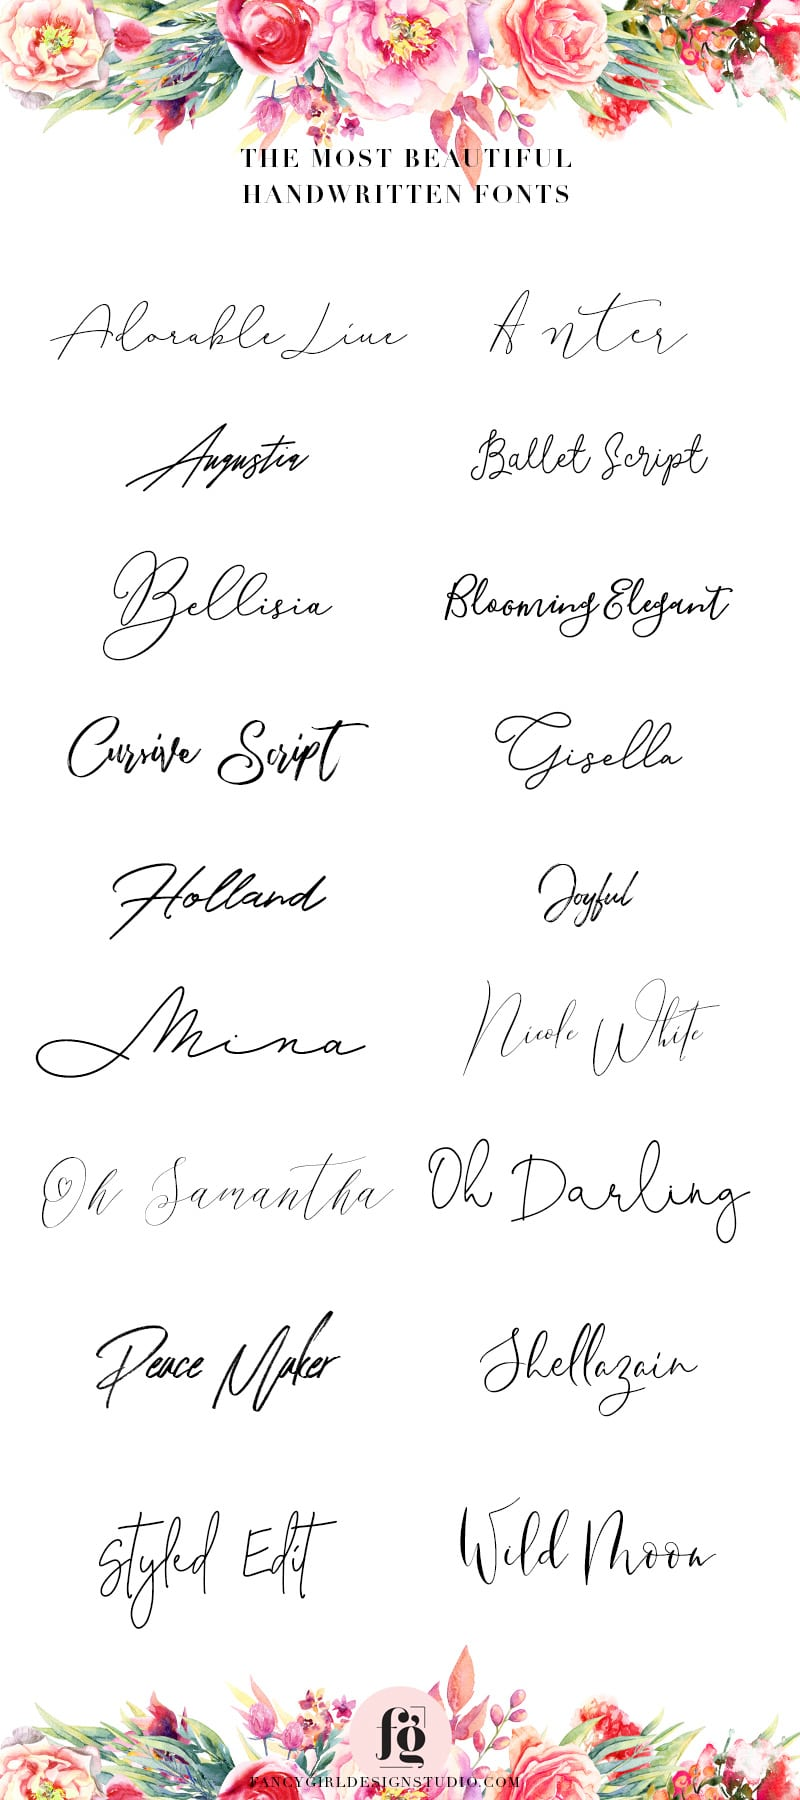 most beautiful handwritten fonts